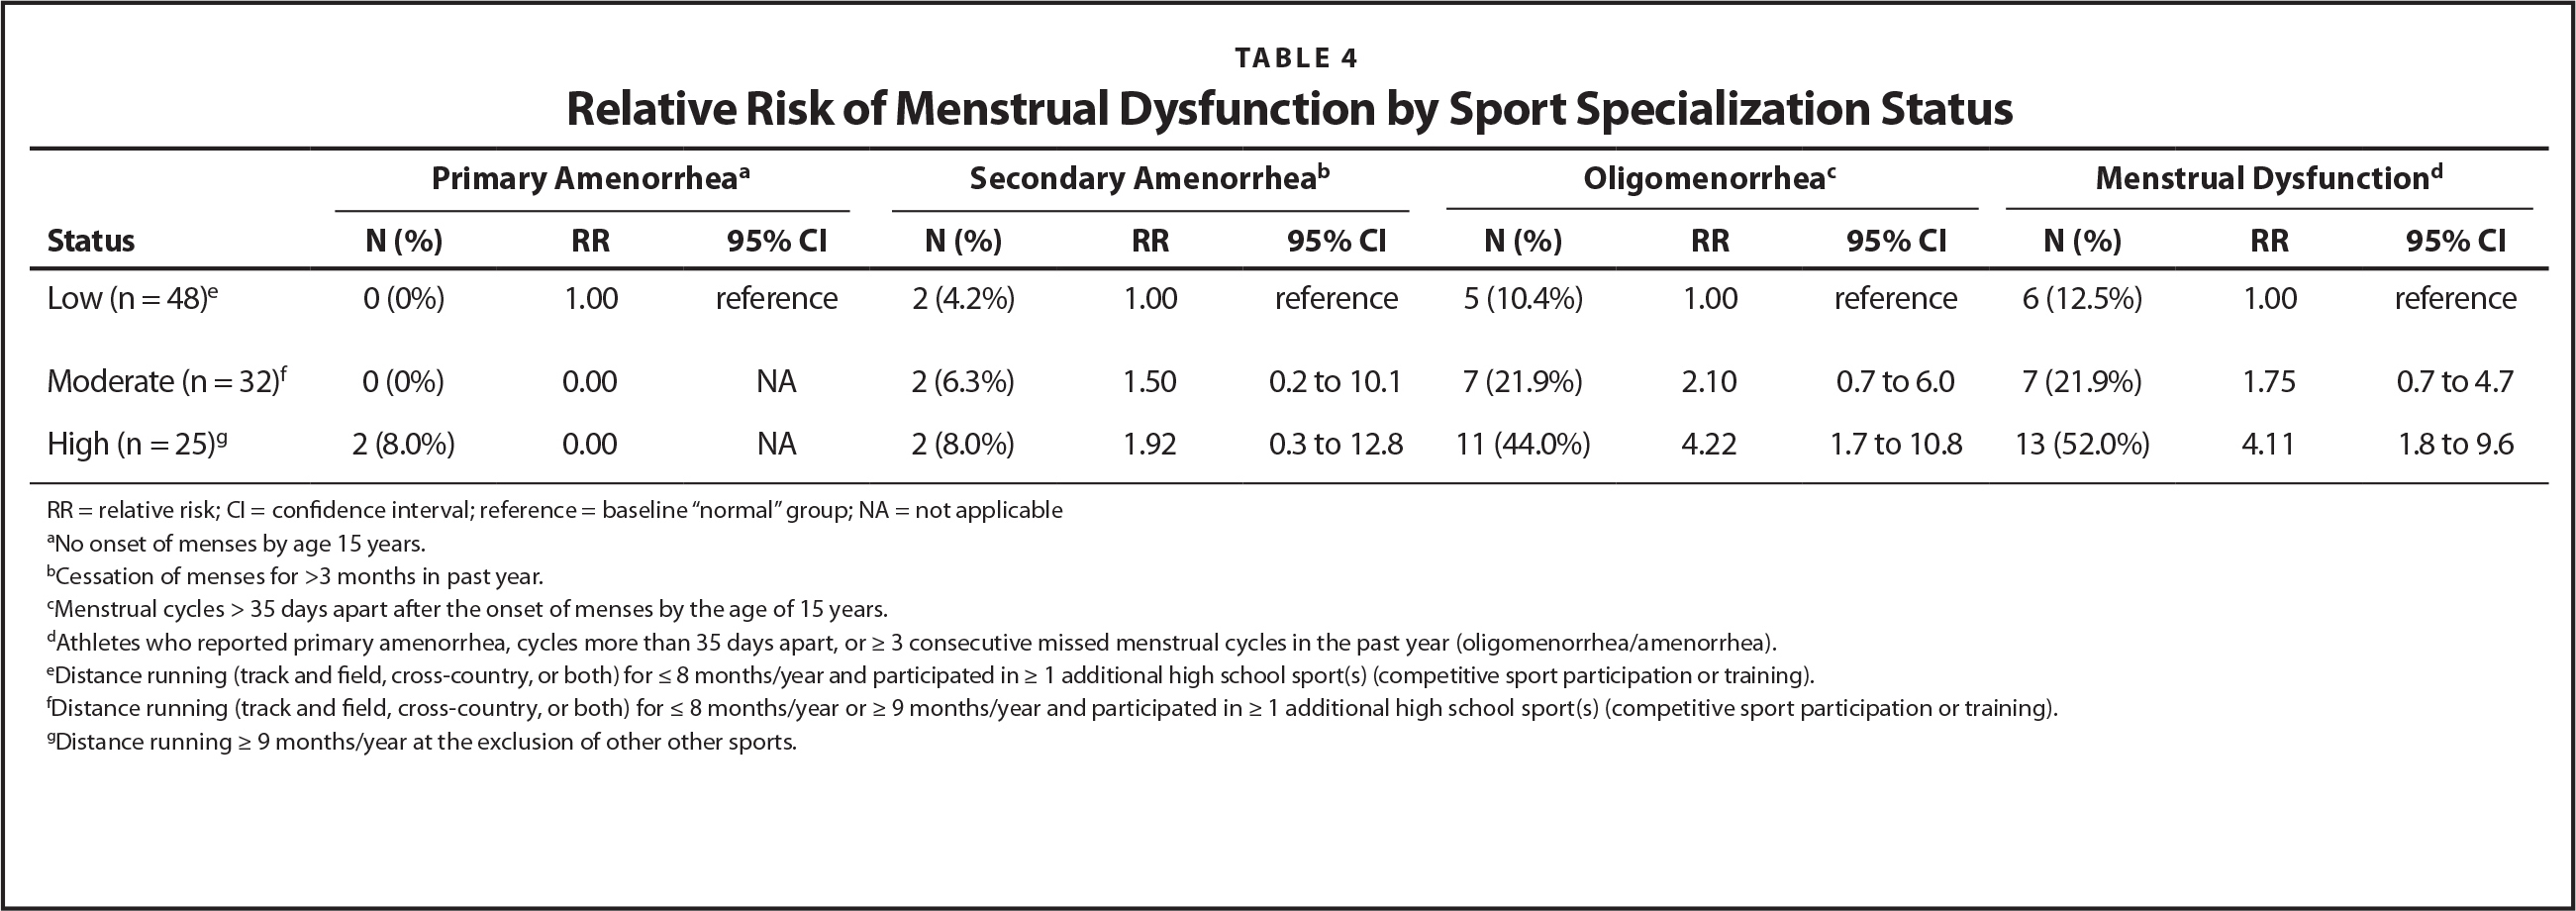 Relative Risk of Menstrual Dysfunction by Sport Specialization Status